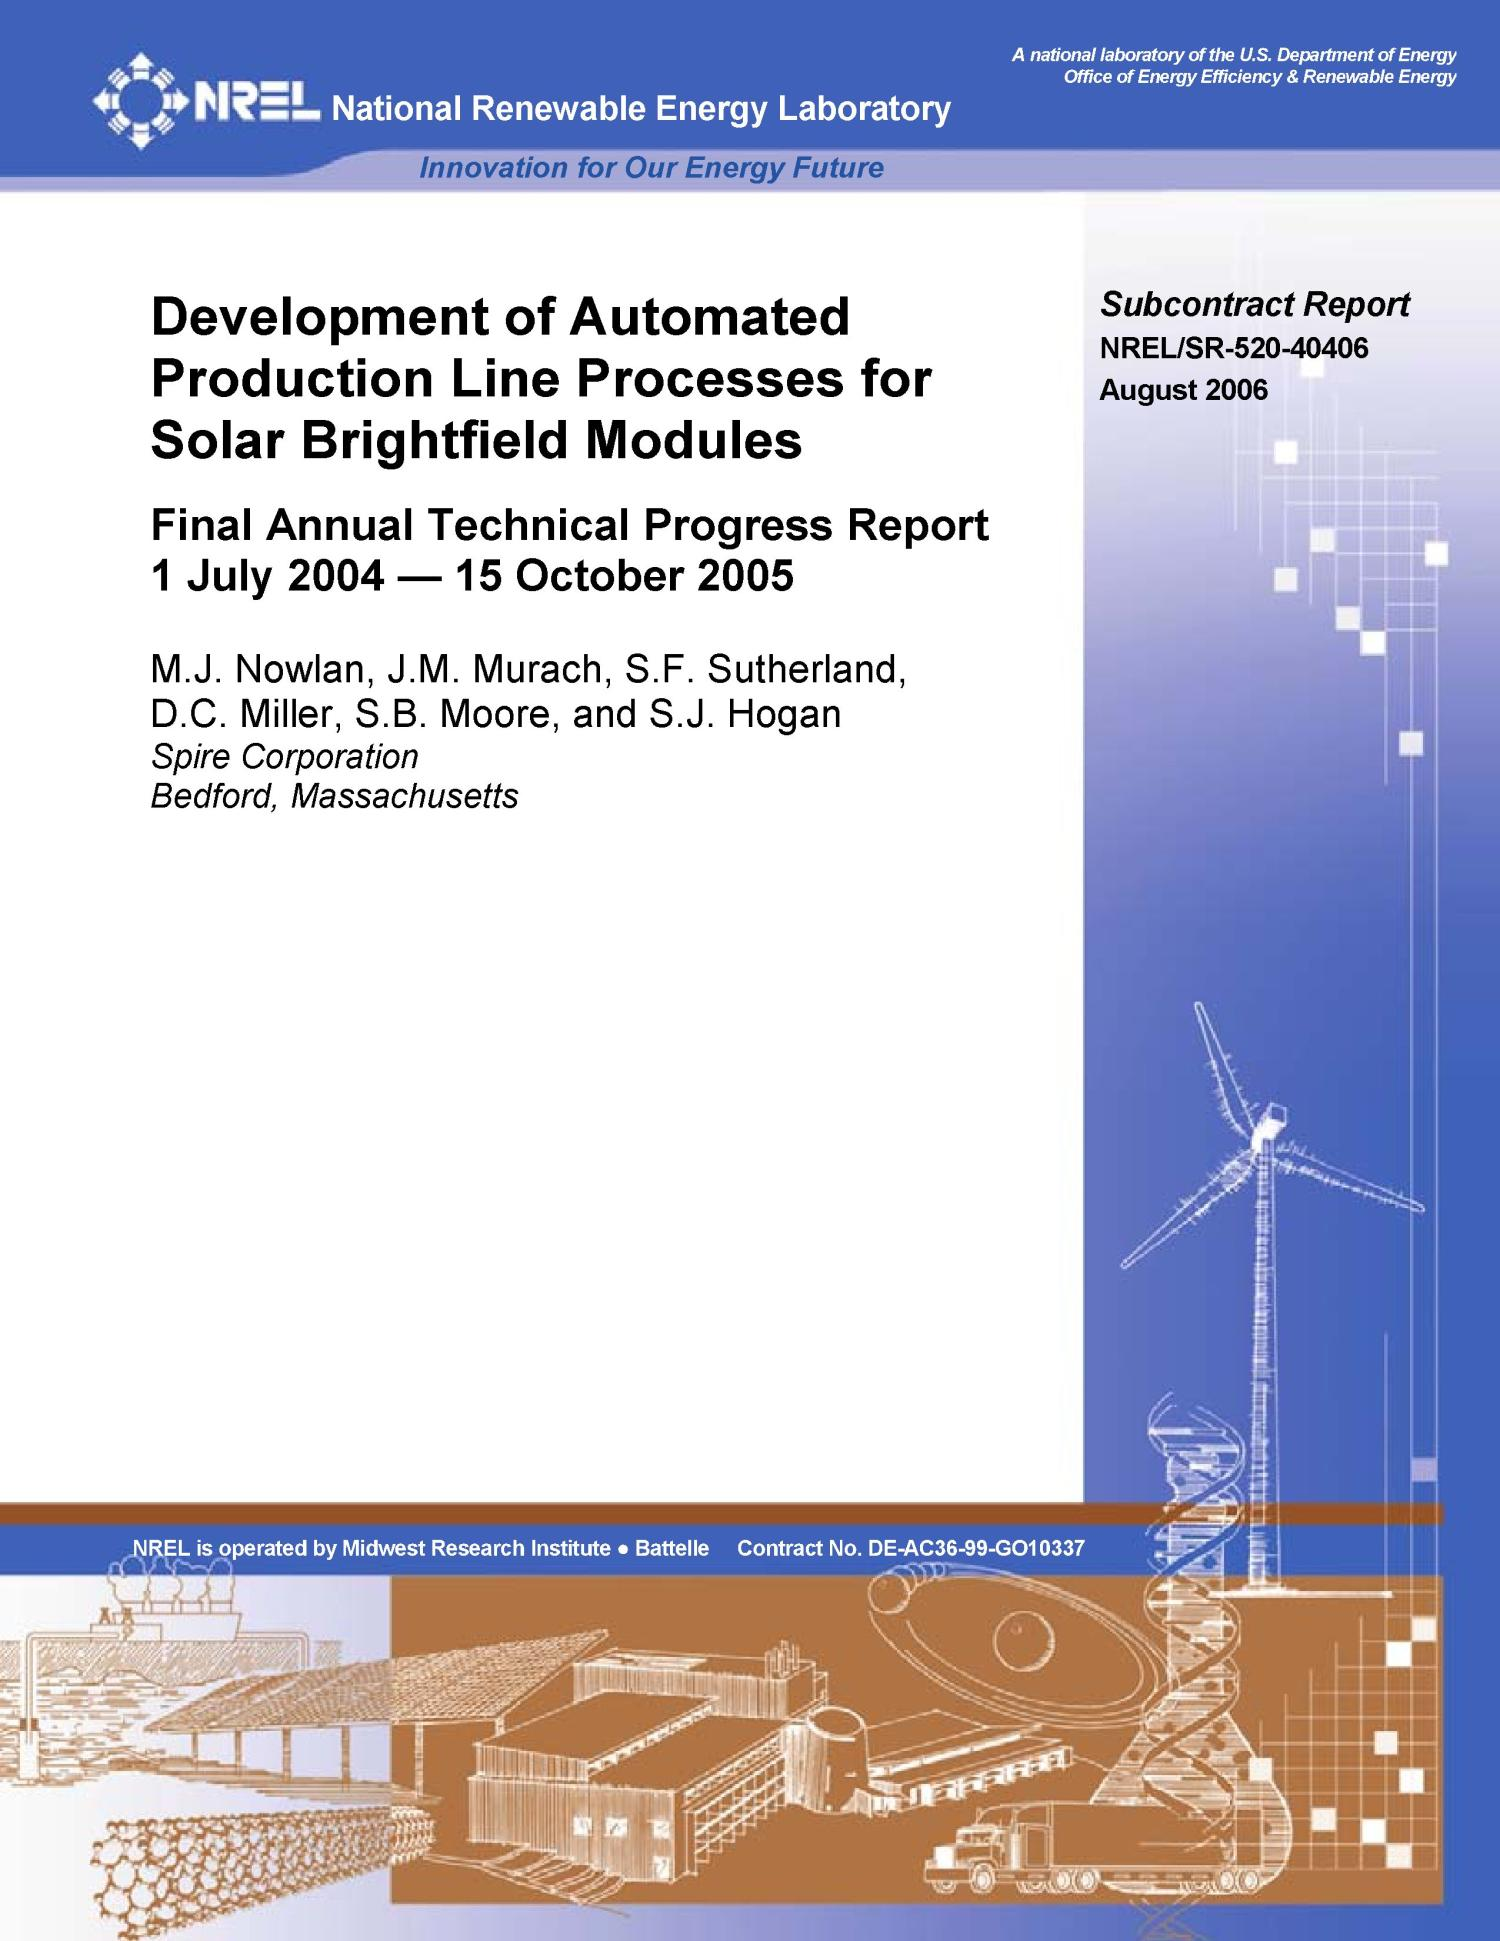 Development of Automated Production Line Processes for Solar Brightfield Modules: Final Annual Technical Progress Report, 1 July 2004 -- 15 October 2005                                                                                                      [Sequence #]: 1 of 38